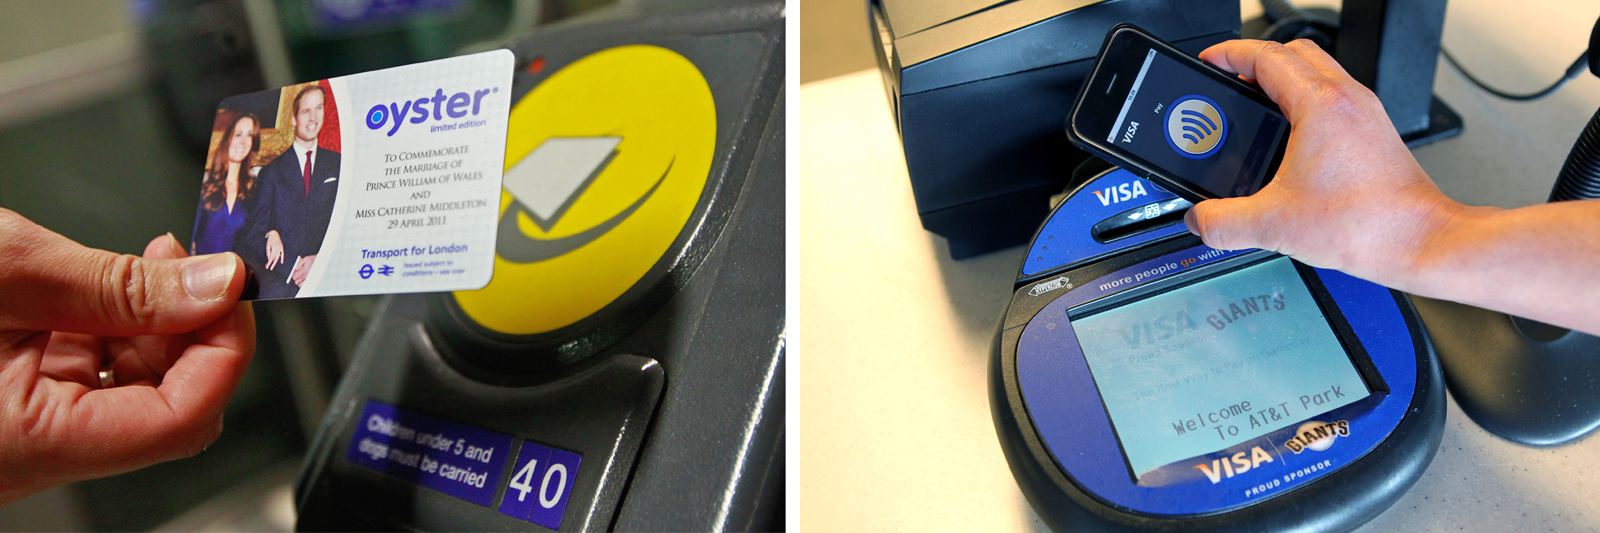 Oyster Card versus NFC contactless payments